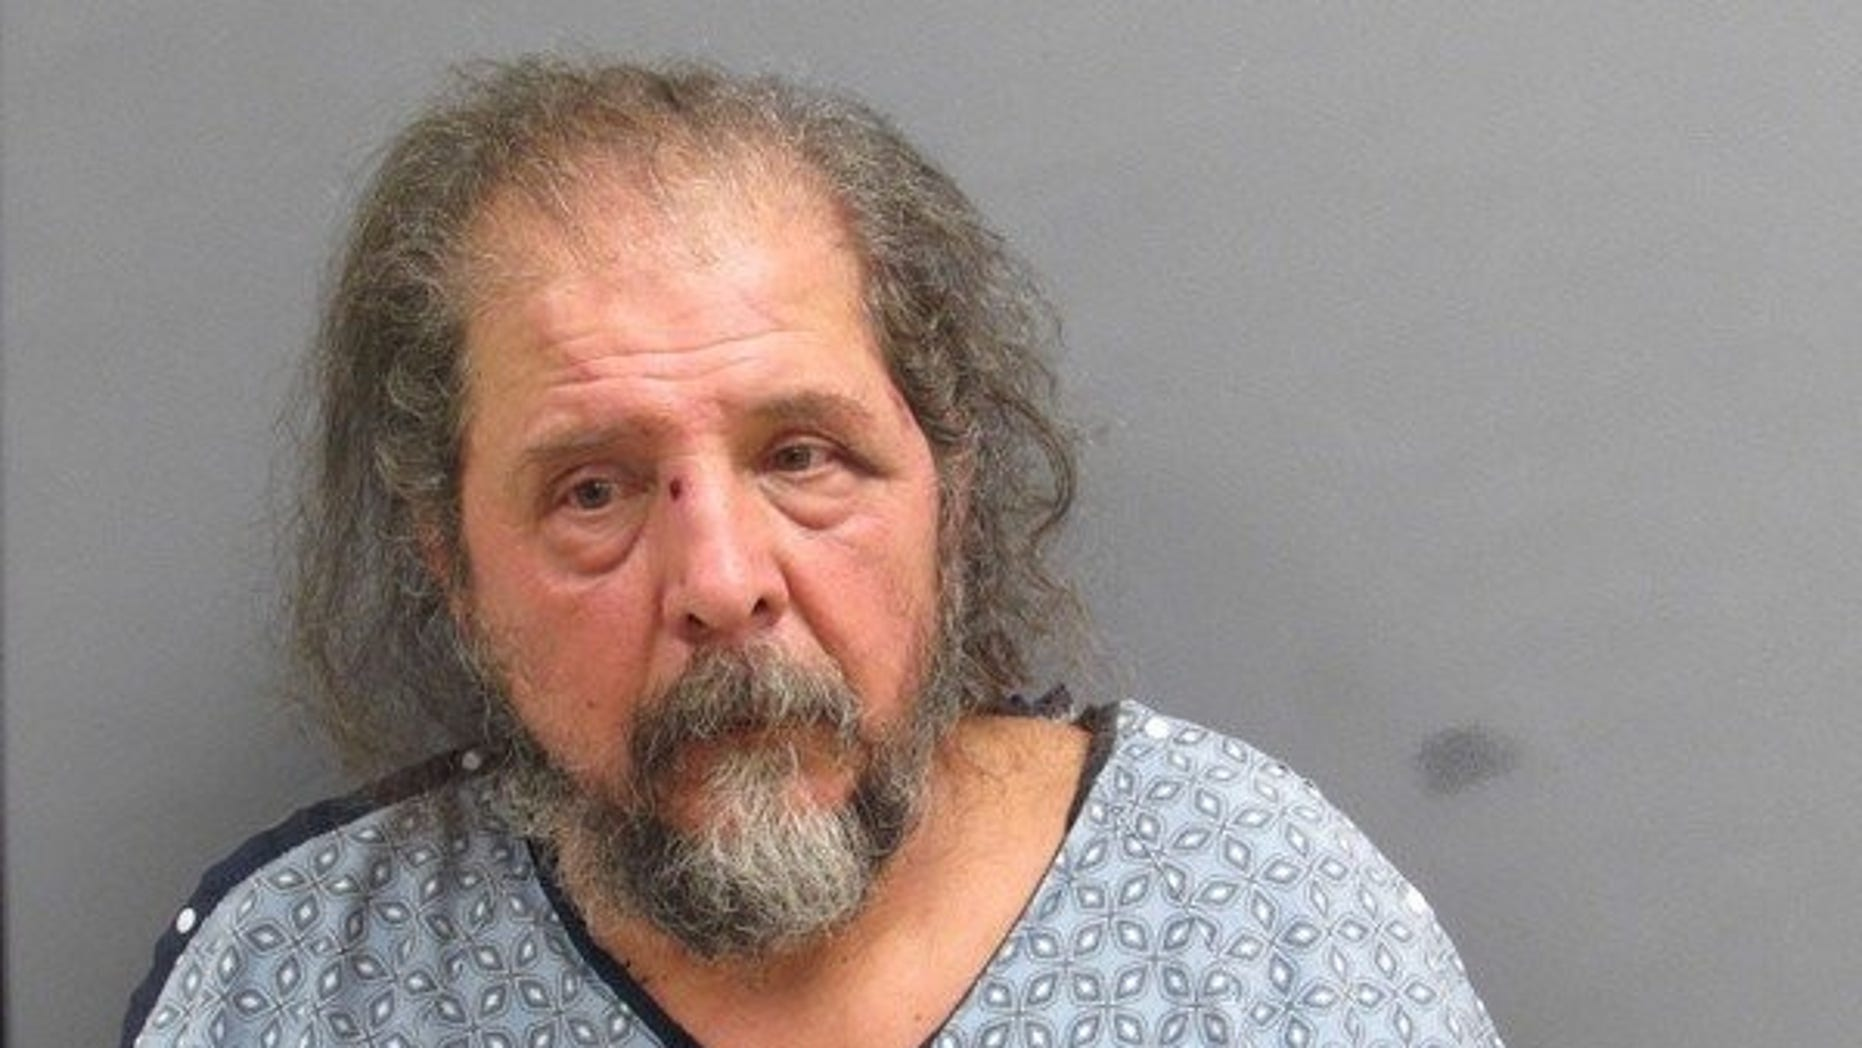 Robert Nompleggi denied allegations that he used a fireplace poker to kill another man.